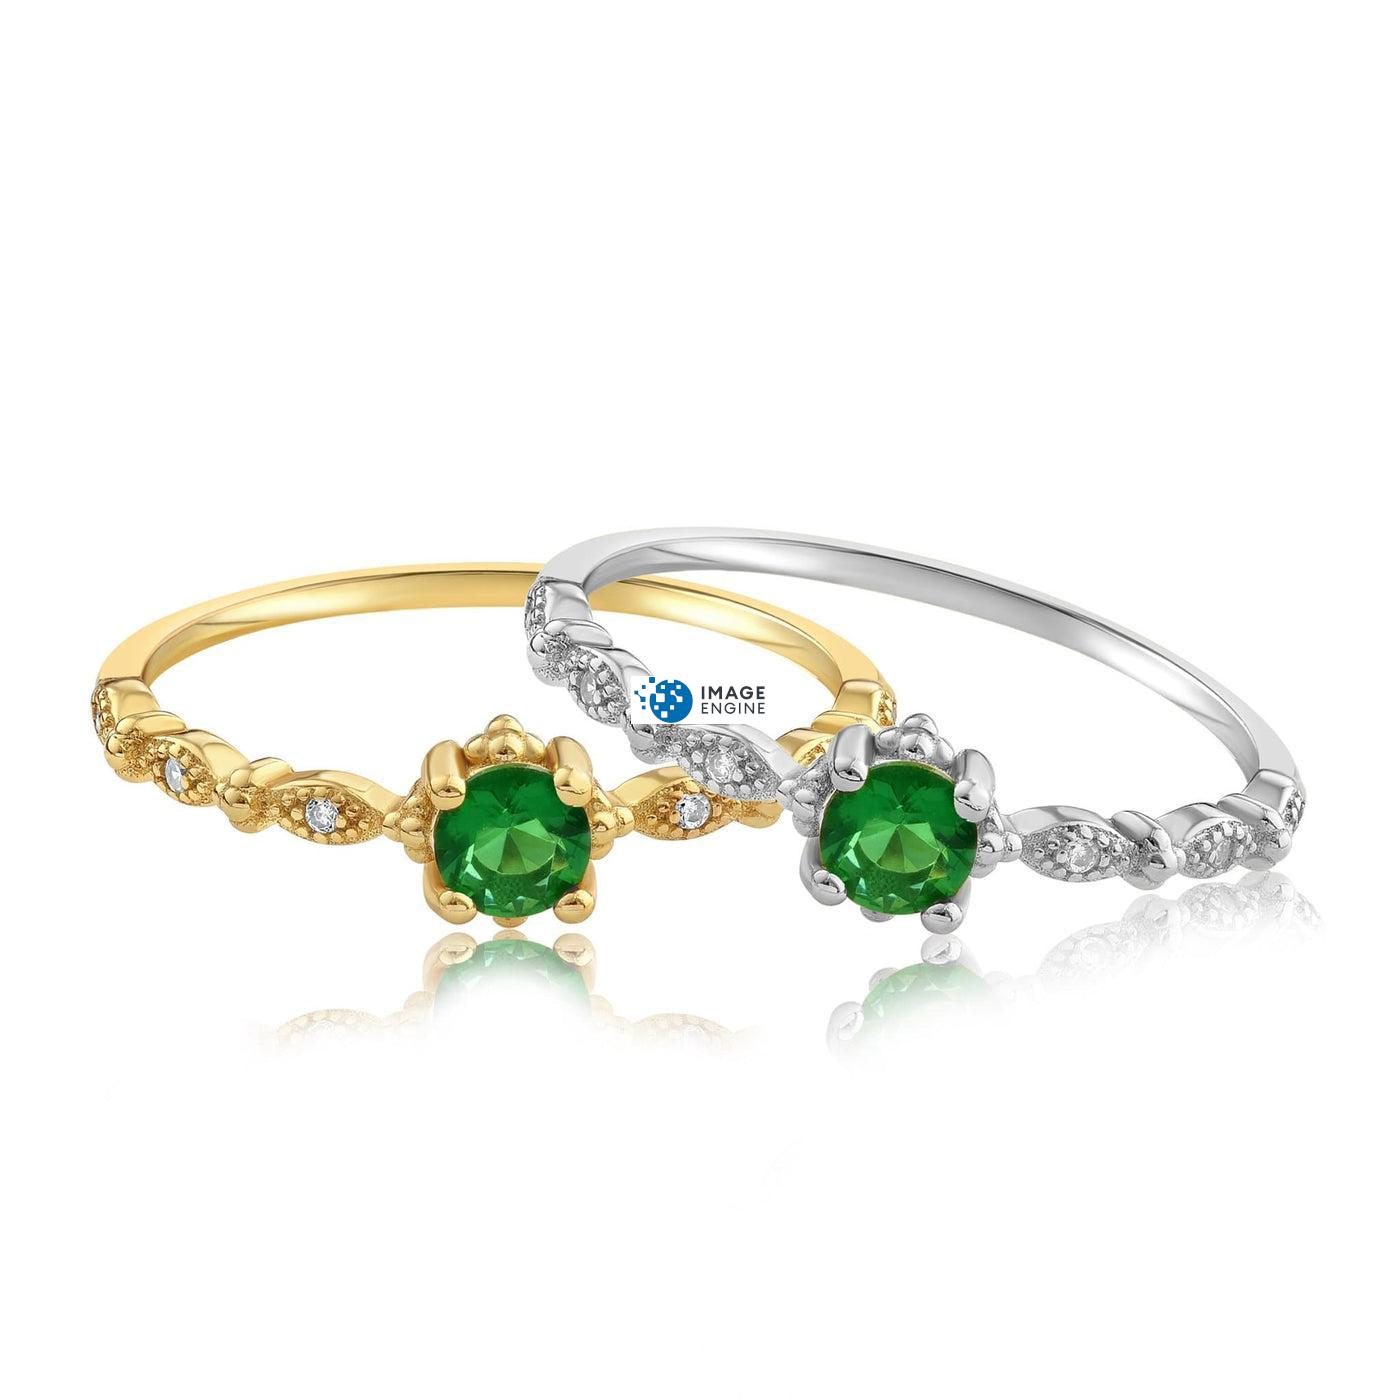 Garen Ring Green Gemstone - Front View Side by Side - 18K Yellow Gold Vermeil and 925 Sterling Silver